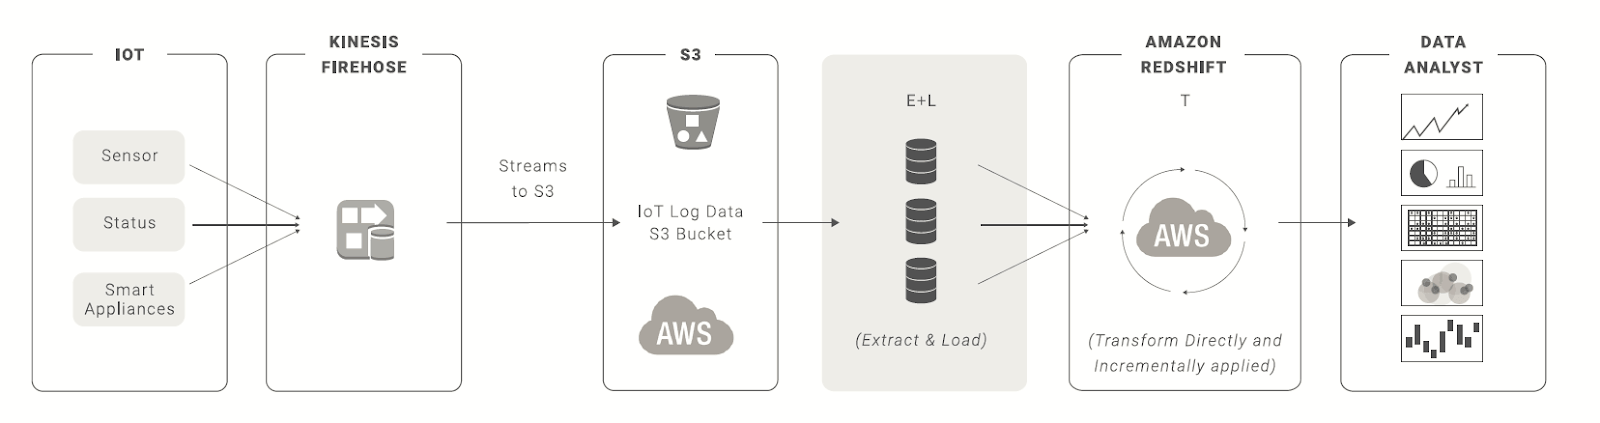 Where to store your data: Amazon Redshift vs  S3